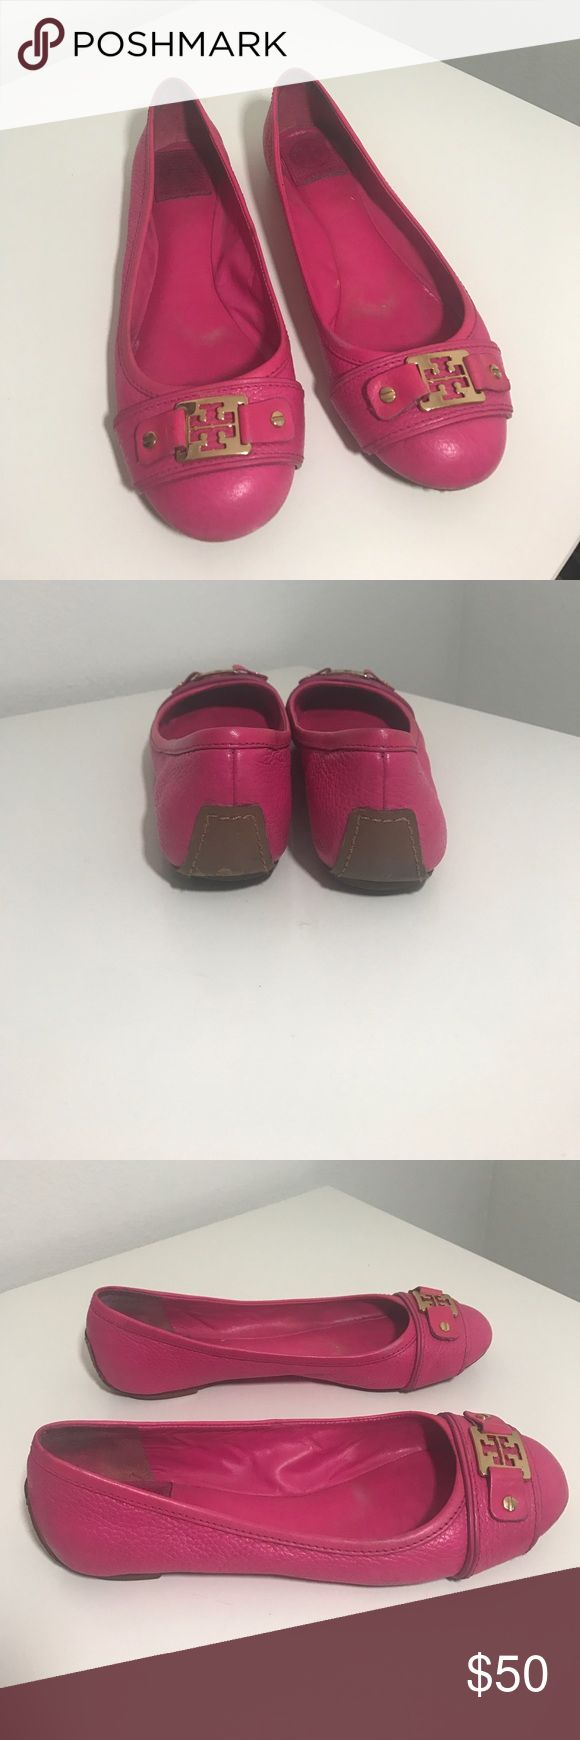 Tory burch flats Pink. Size 8. Normal wear and tear. Price firm unless bundled.1031. Tory Burch Shoes Flats & Loafers